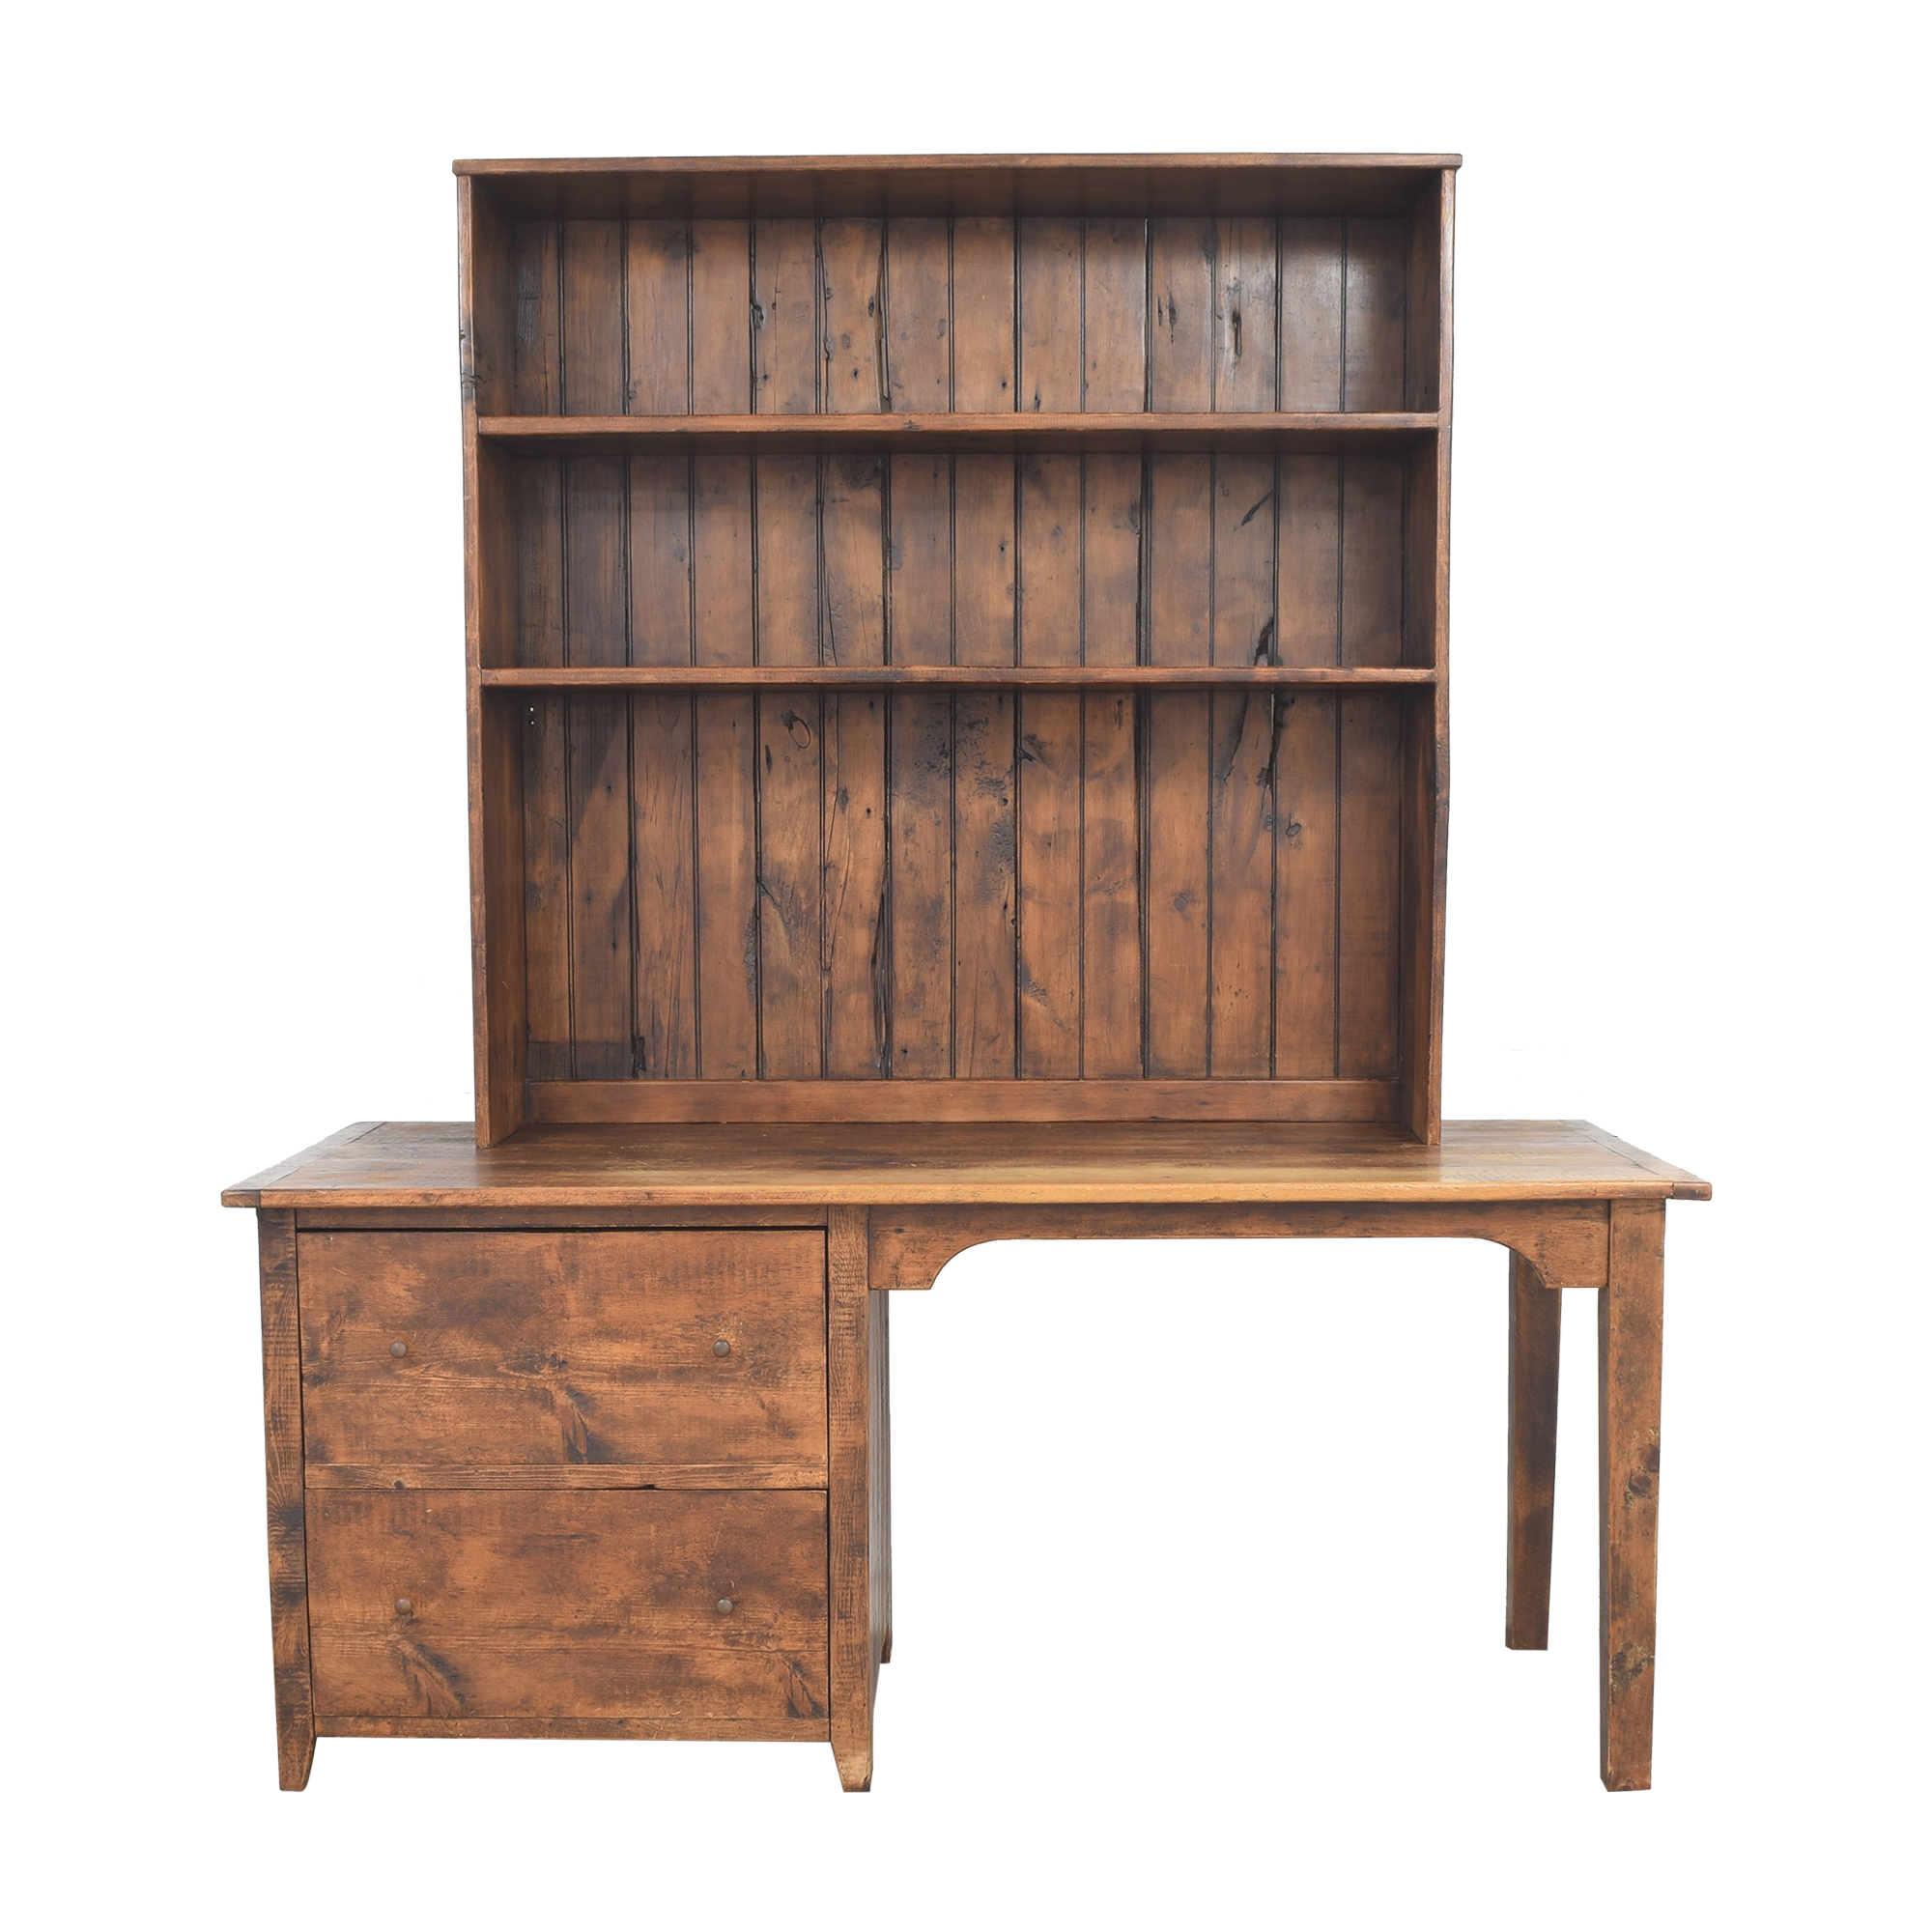 buy Barntiques Desk with Removable Shelving Barntiques